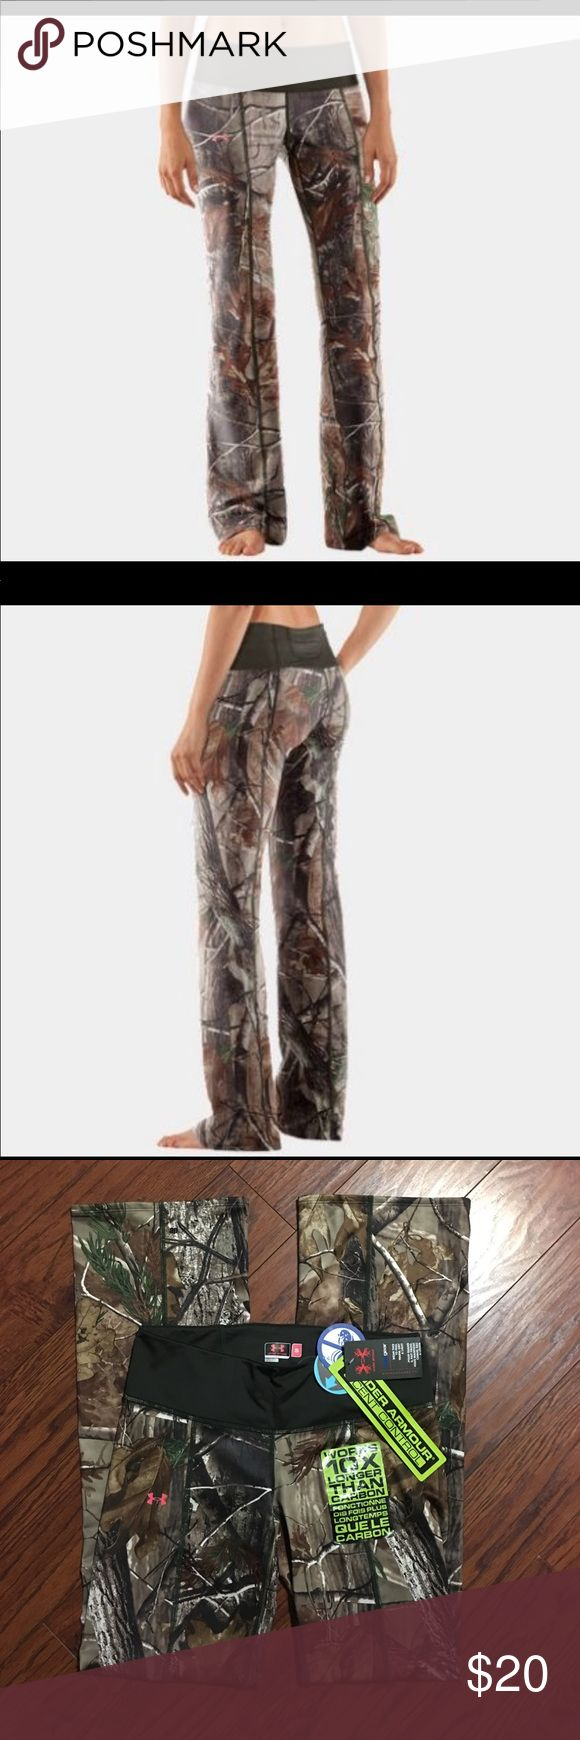 """Under Armour Fitted Pant Brand new real tree camouflage Under Armour fitted, scent control pants. Size small, waist measures 15"""" side to side laying flat (has stretch to them if needed) and inseam measures 33"""" and bottom leg opening is 9"""" side to side laying flat. Under Armour Pants"""